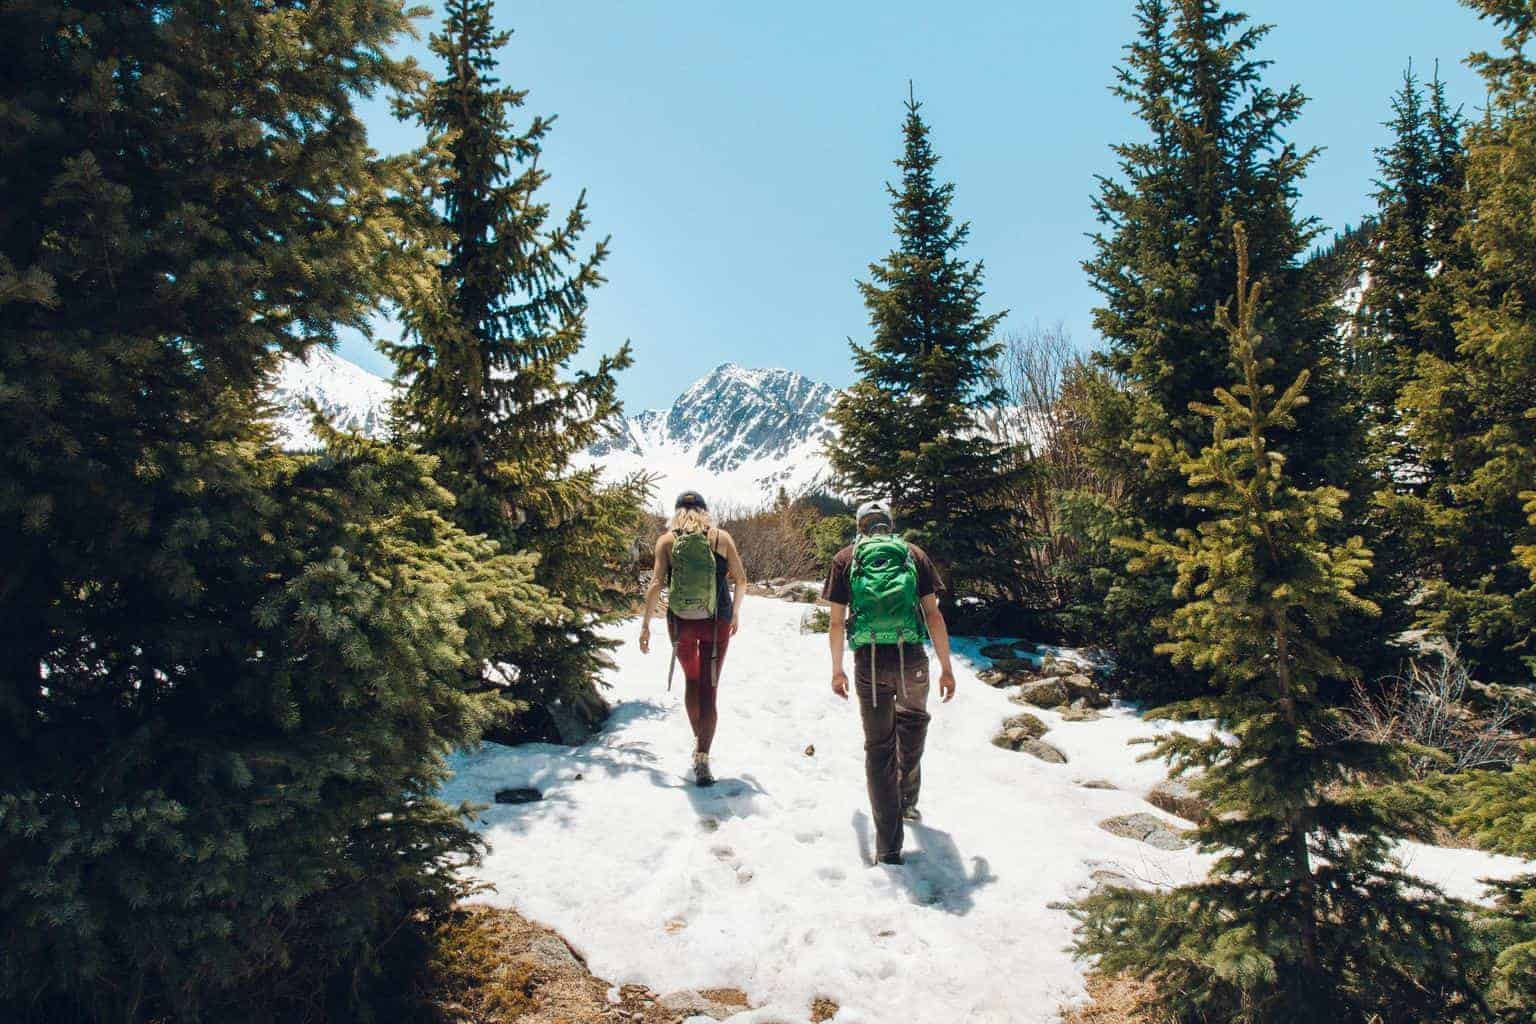 Five medicines to keep in your bag if you plan to travel to mountainous areas